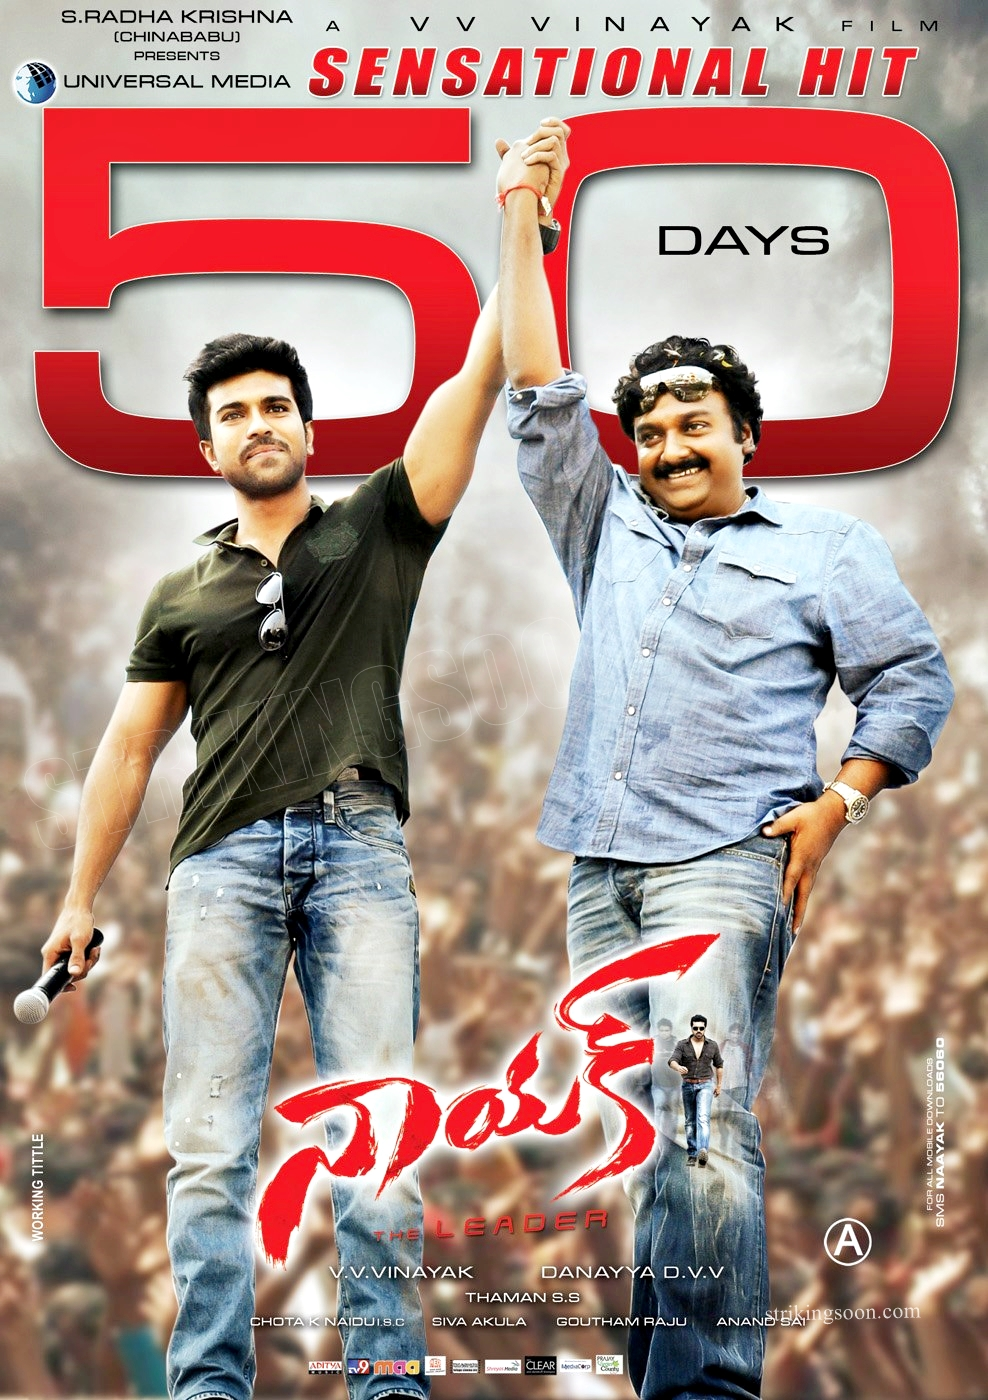 Naayak 50 Days HD Posters - AtoZAllmovie Naayak